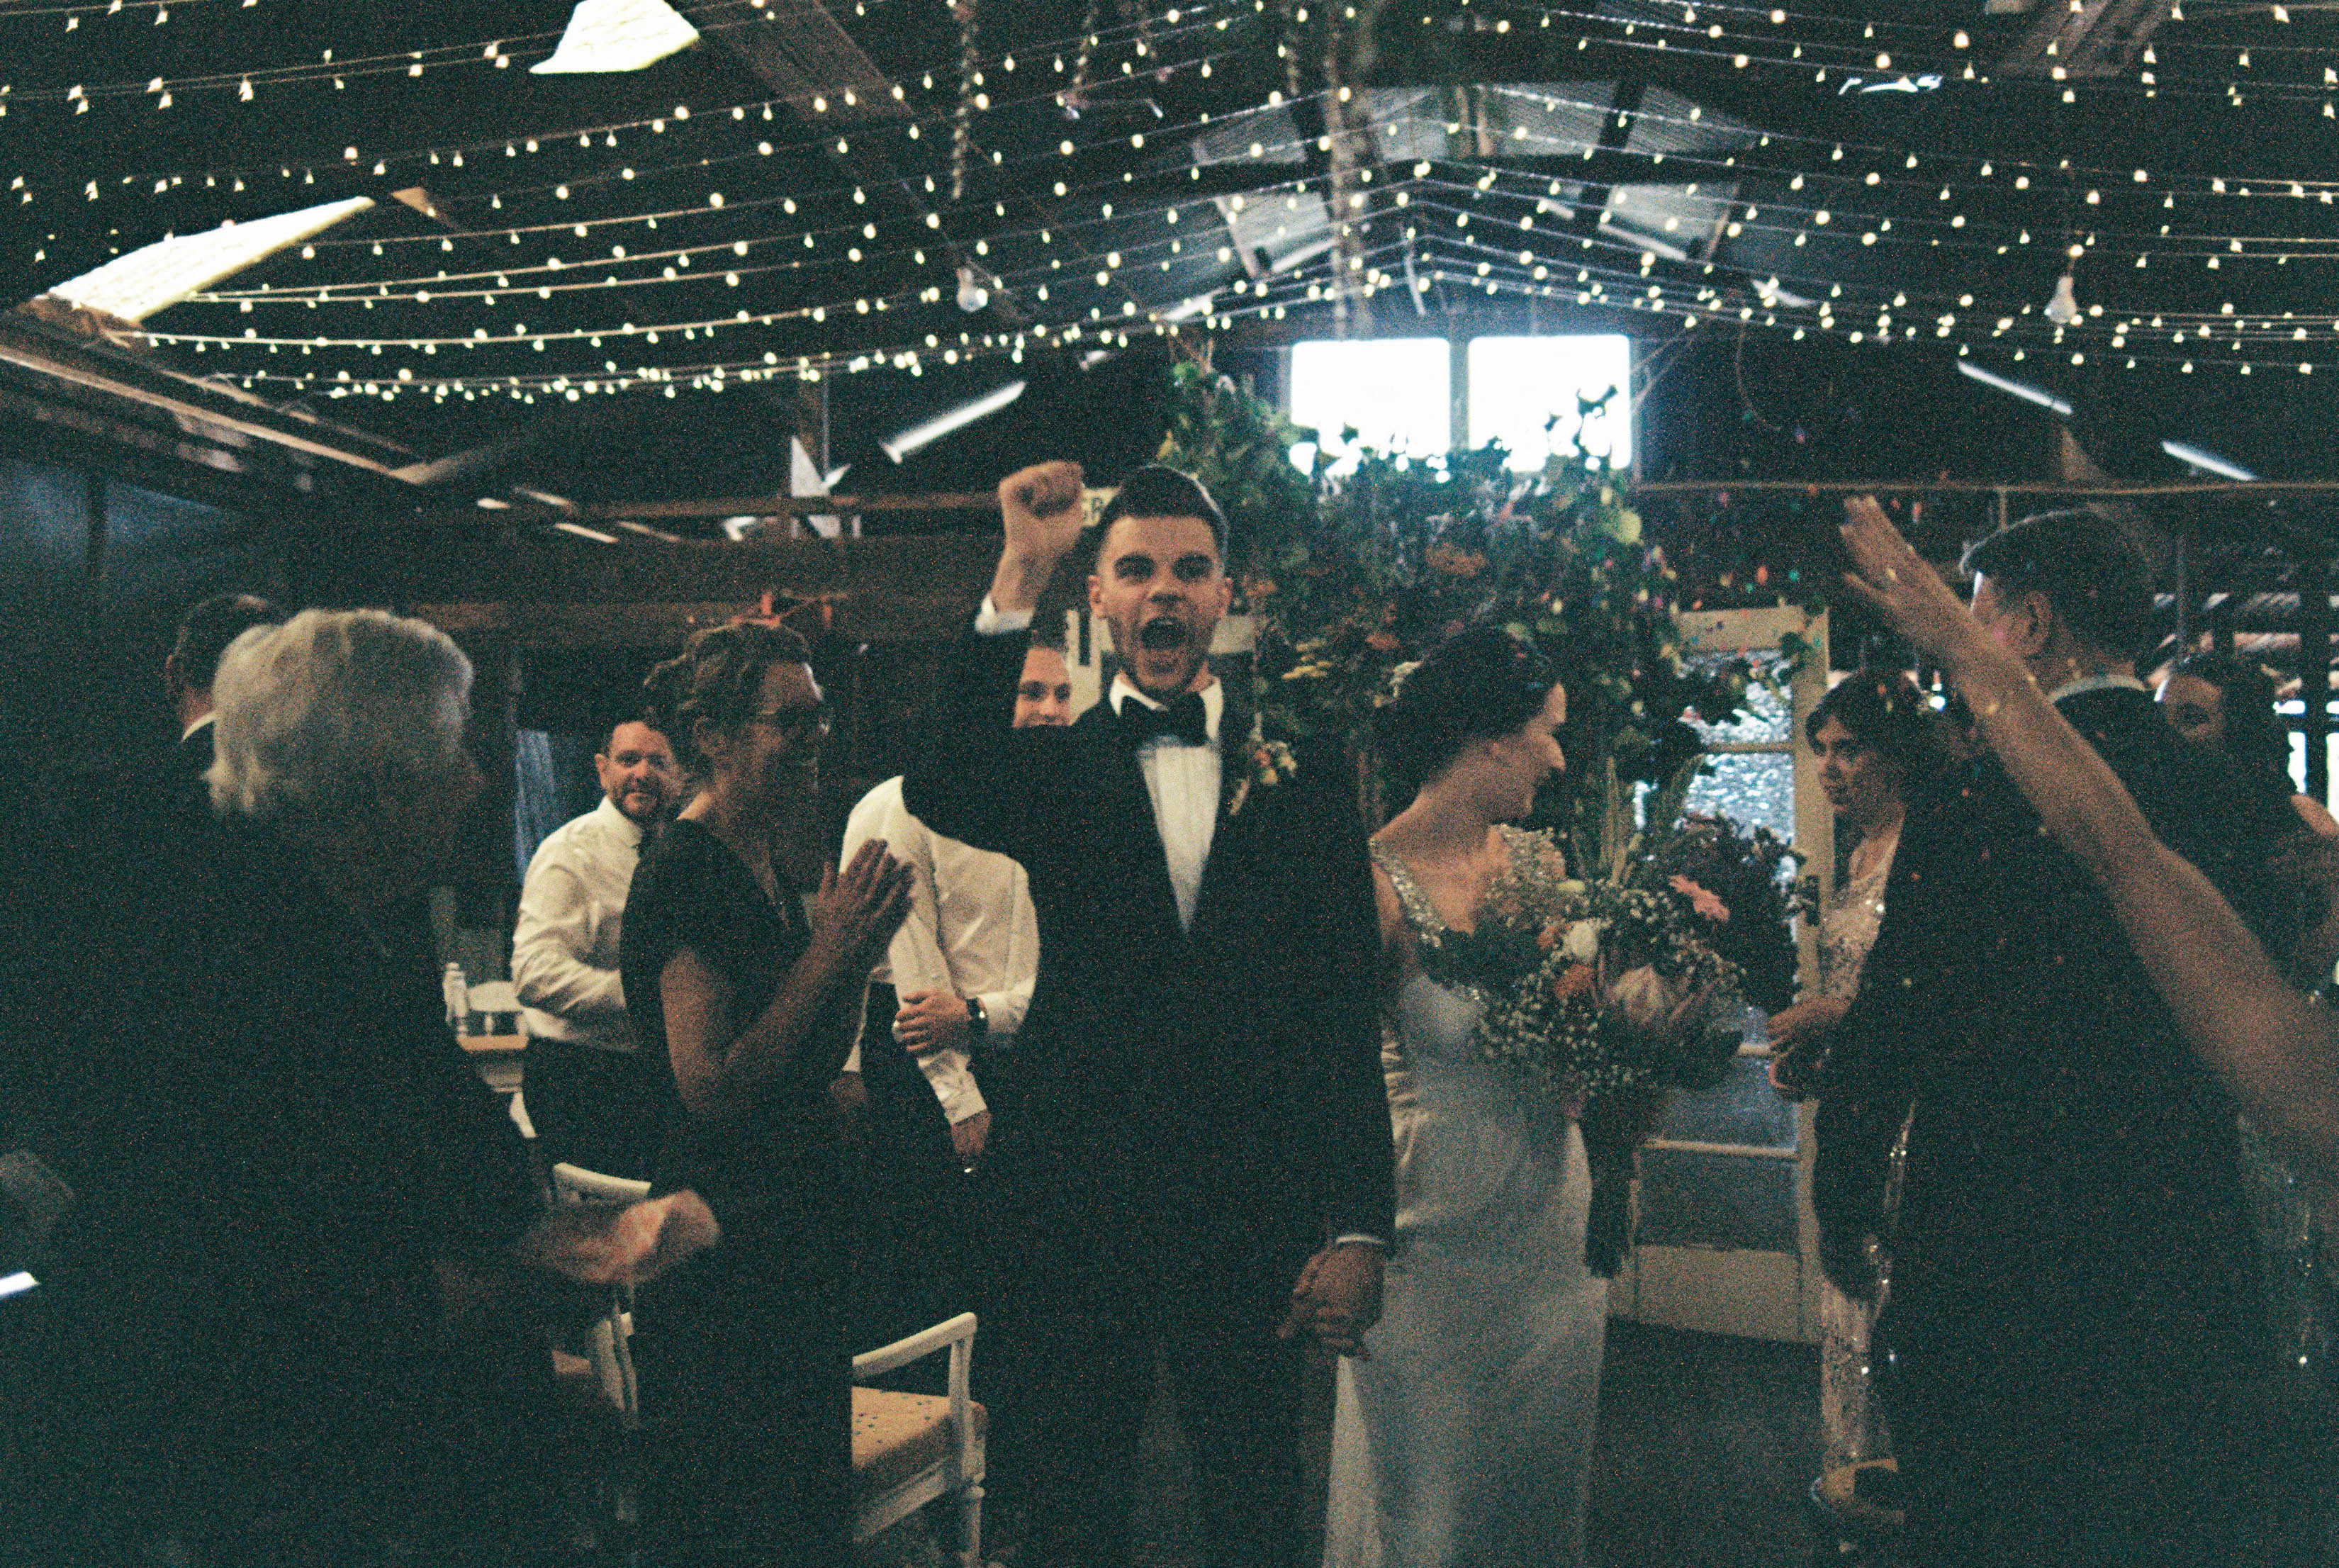 A photo of the groom cheering as he and the bride walk back down the aisle after their Bridgetown Wedding Ceremony